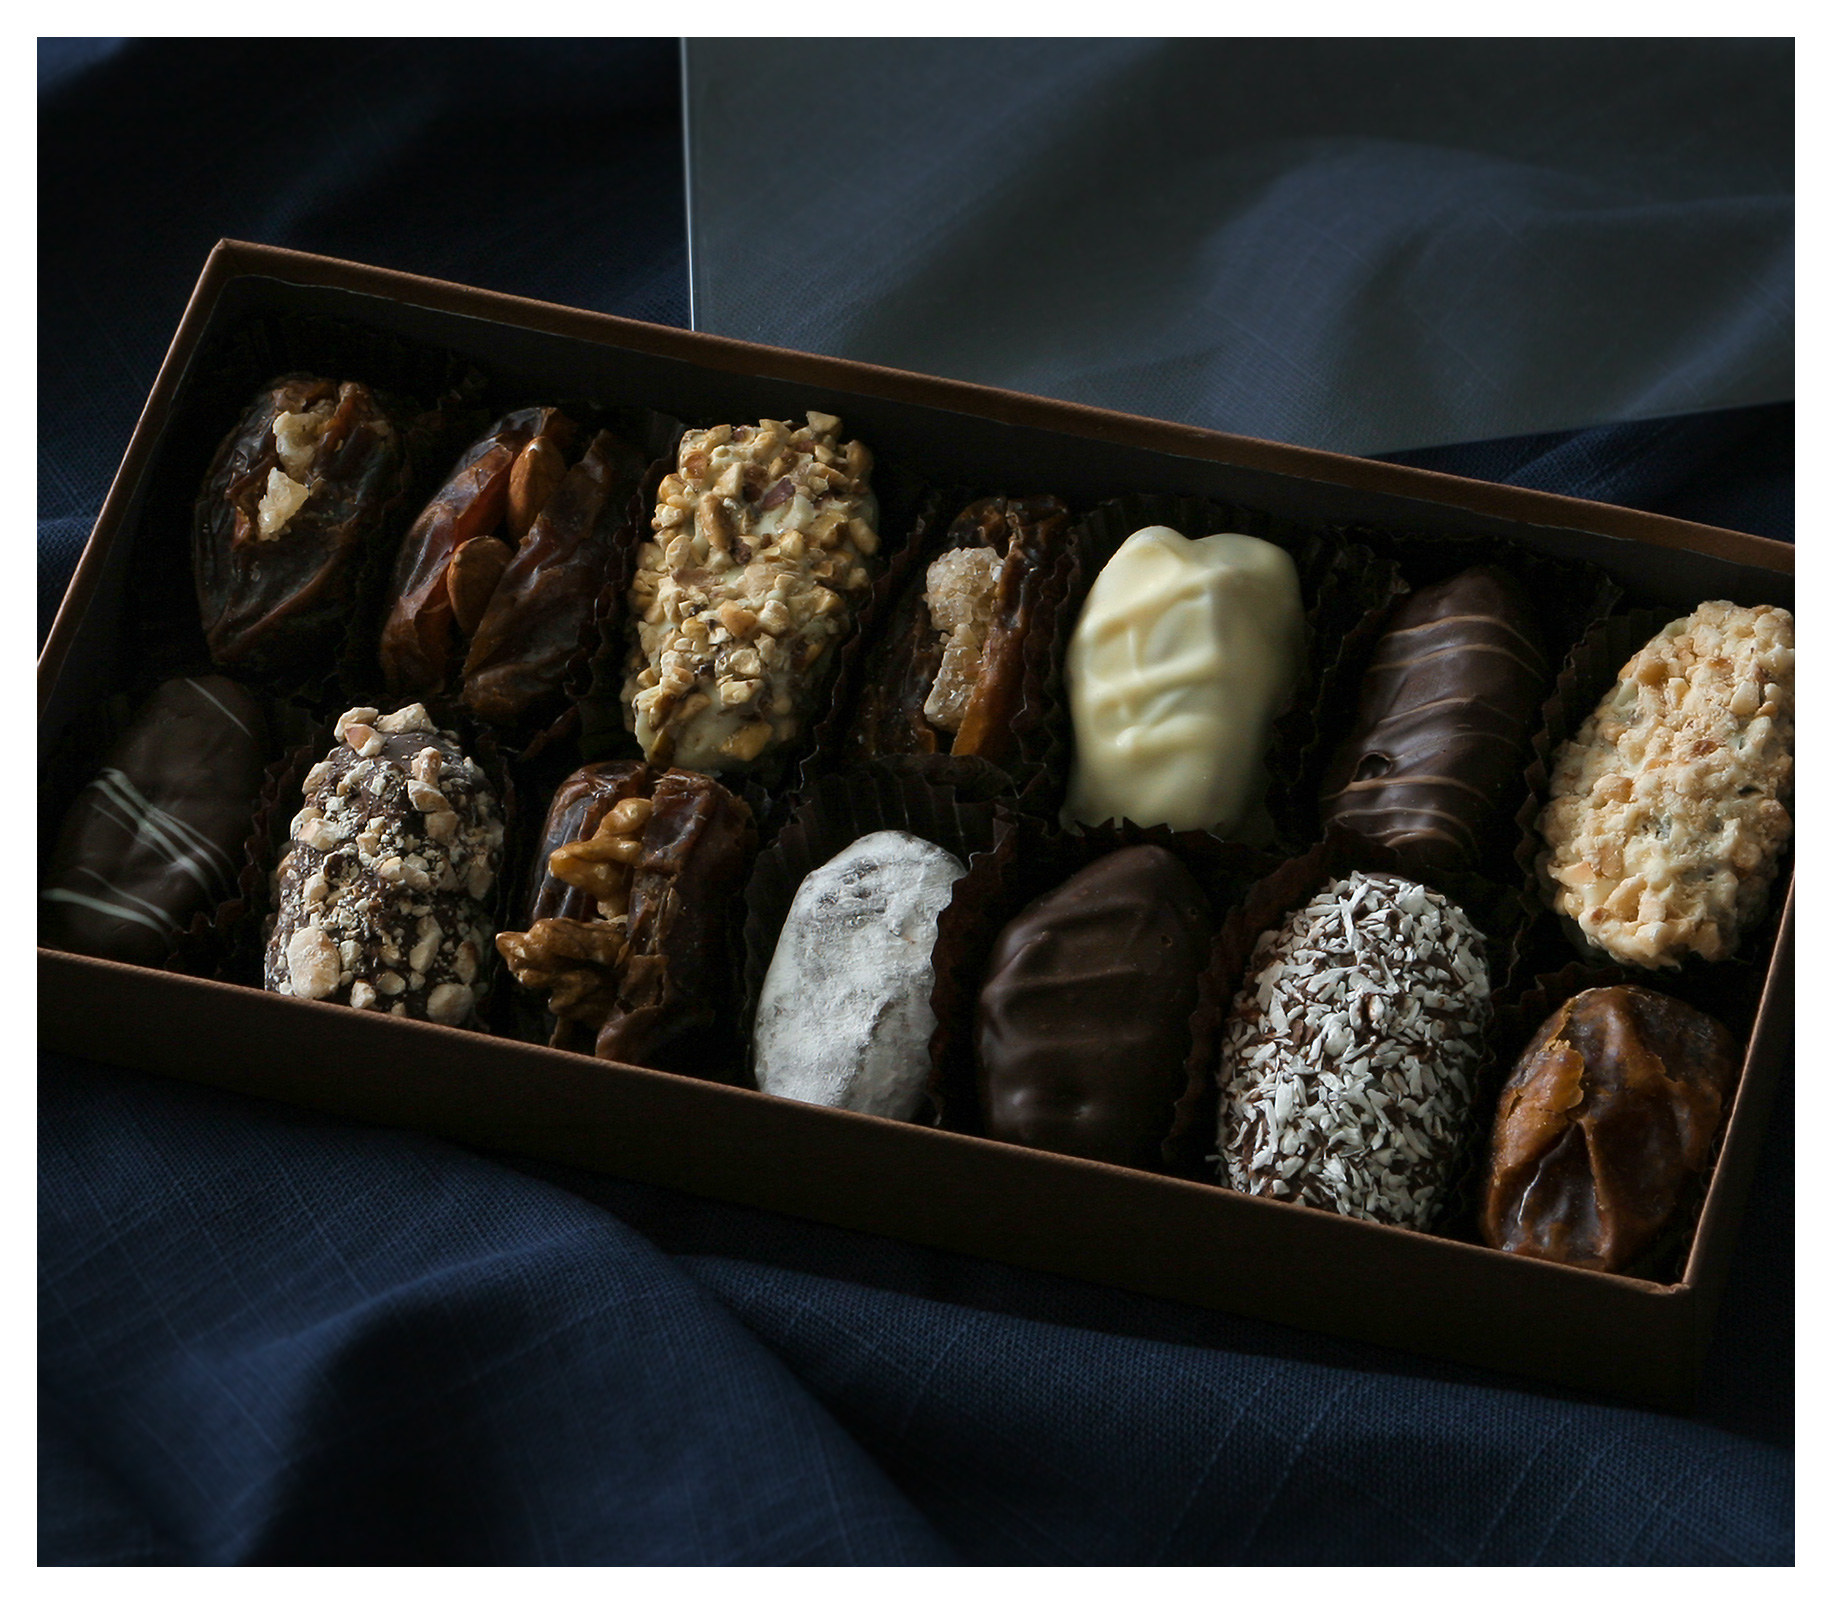 Food as product photography: Chocolate coated medjool dates in luxury gift box